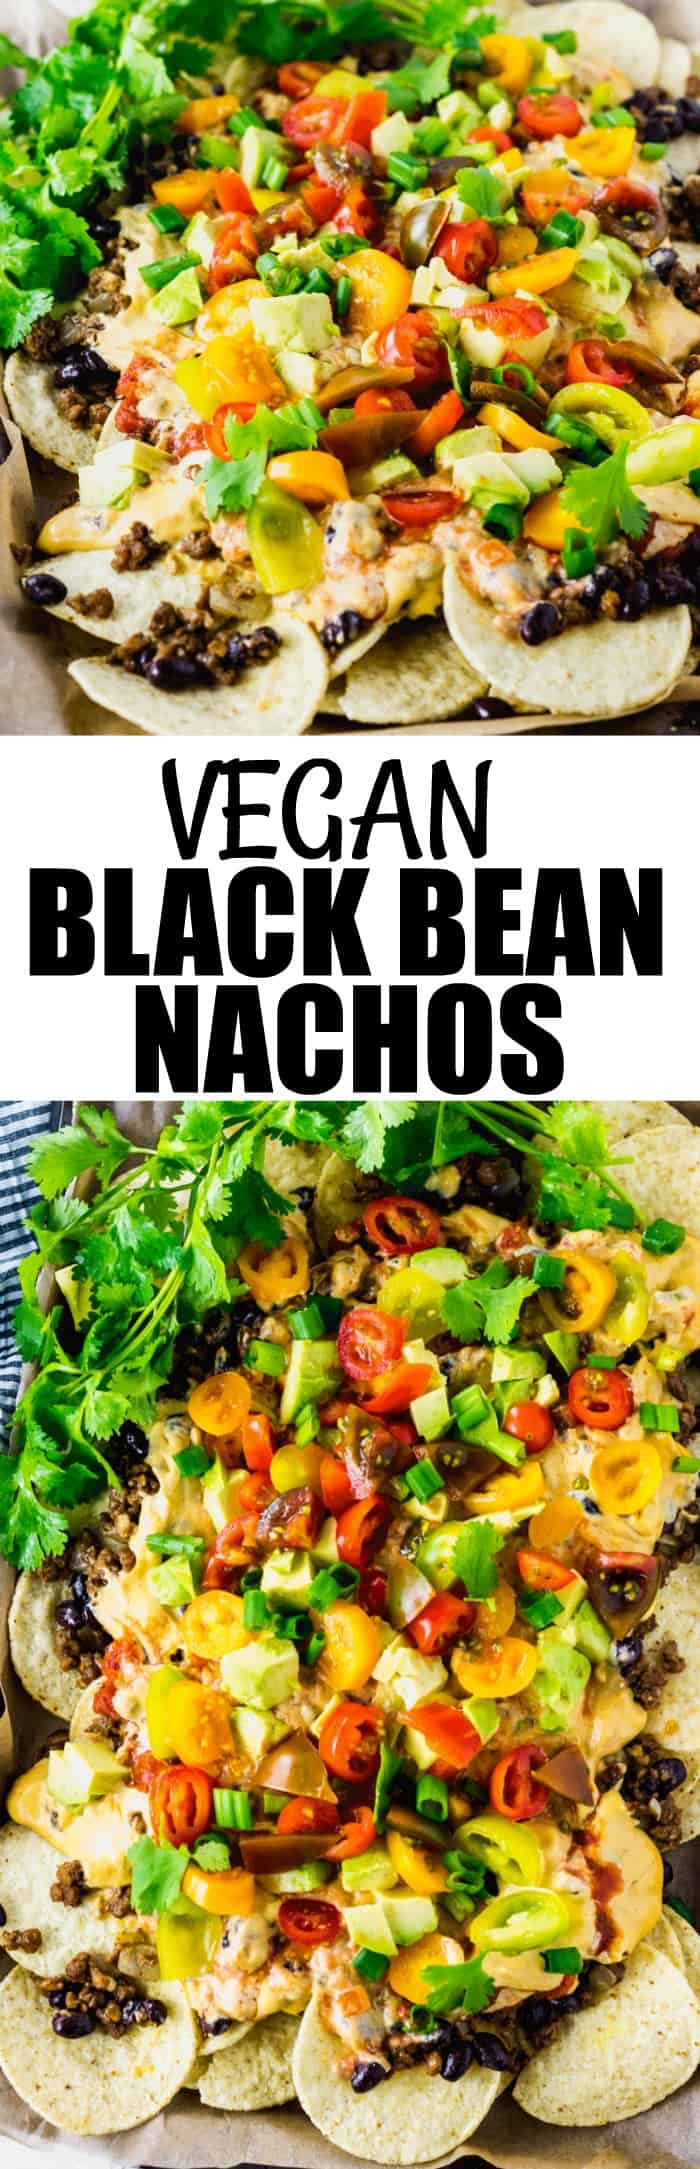 Vegan Black Bean Nachos